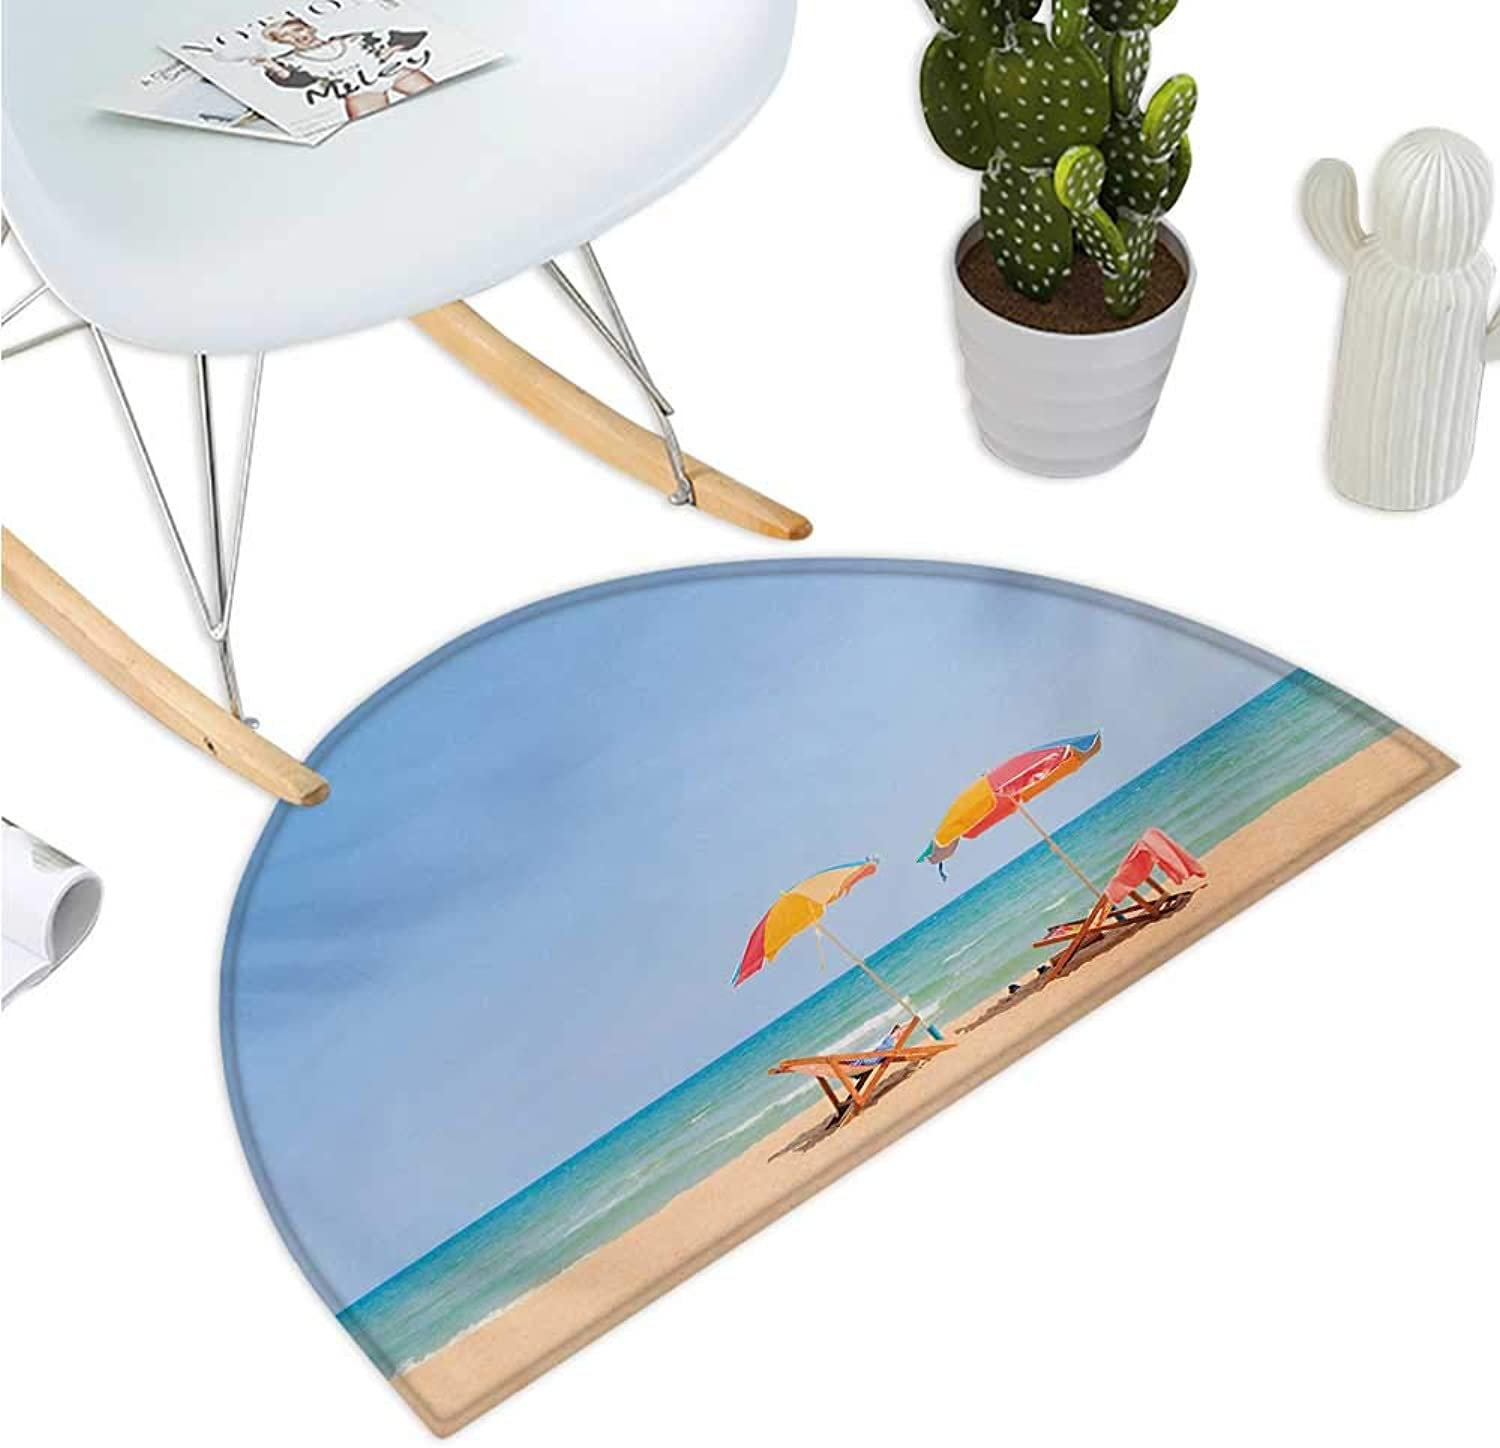 Seaside Semicircle Doormat Beach Chair Umbrella on The Beach Leisure Time Tourist Attractions Photo Print Entry Door Mat H 47.2  xD 70.8  Turquoise Beige